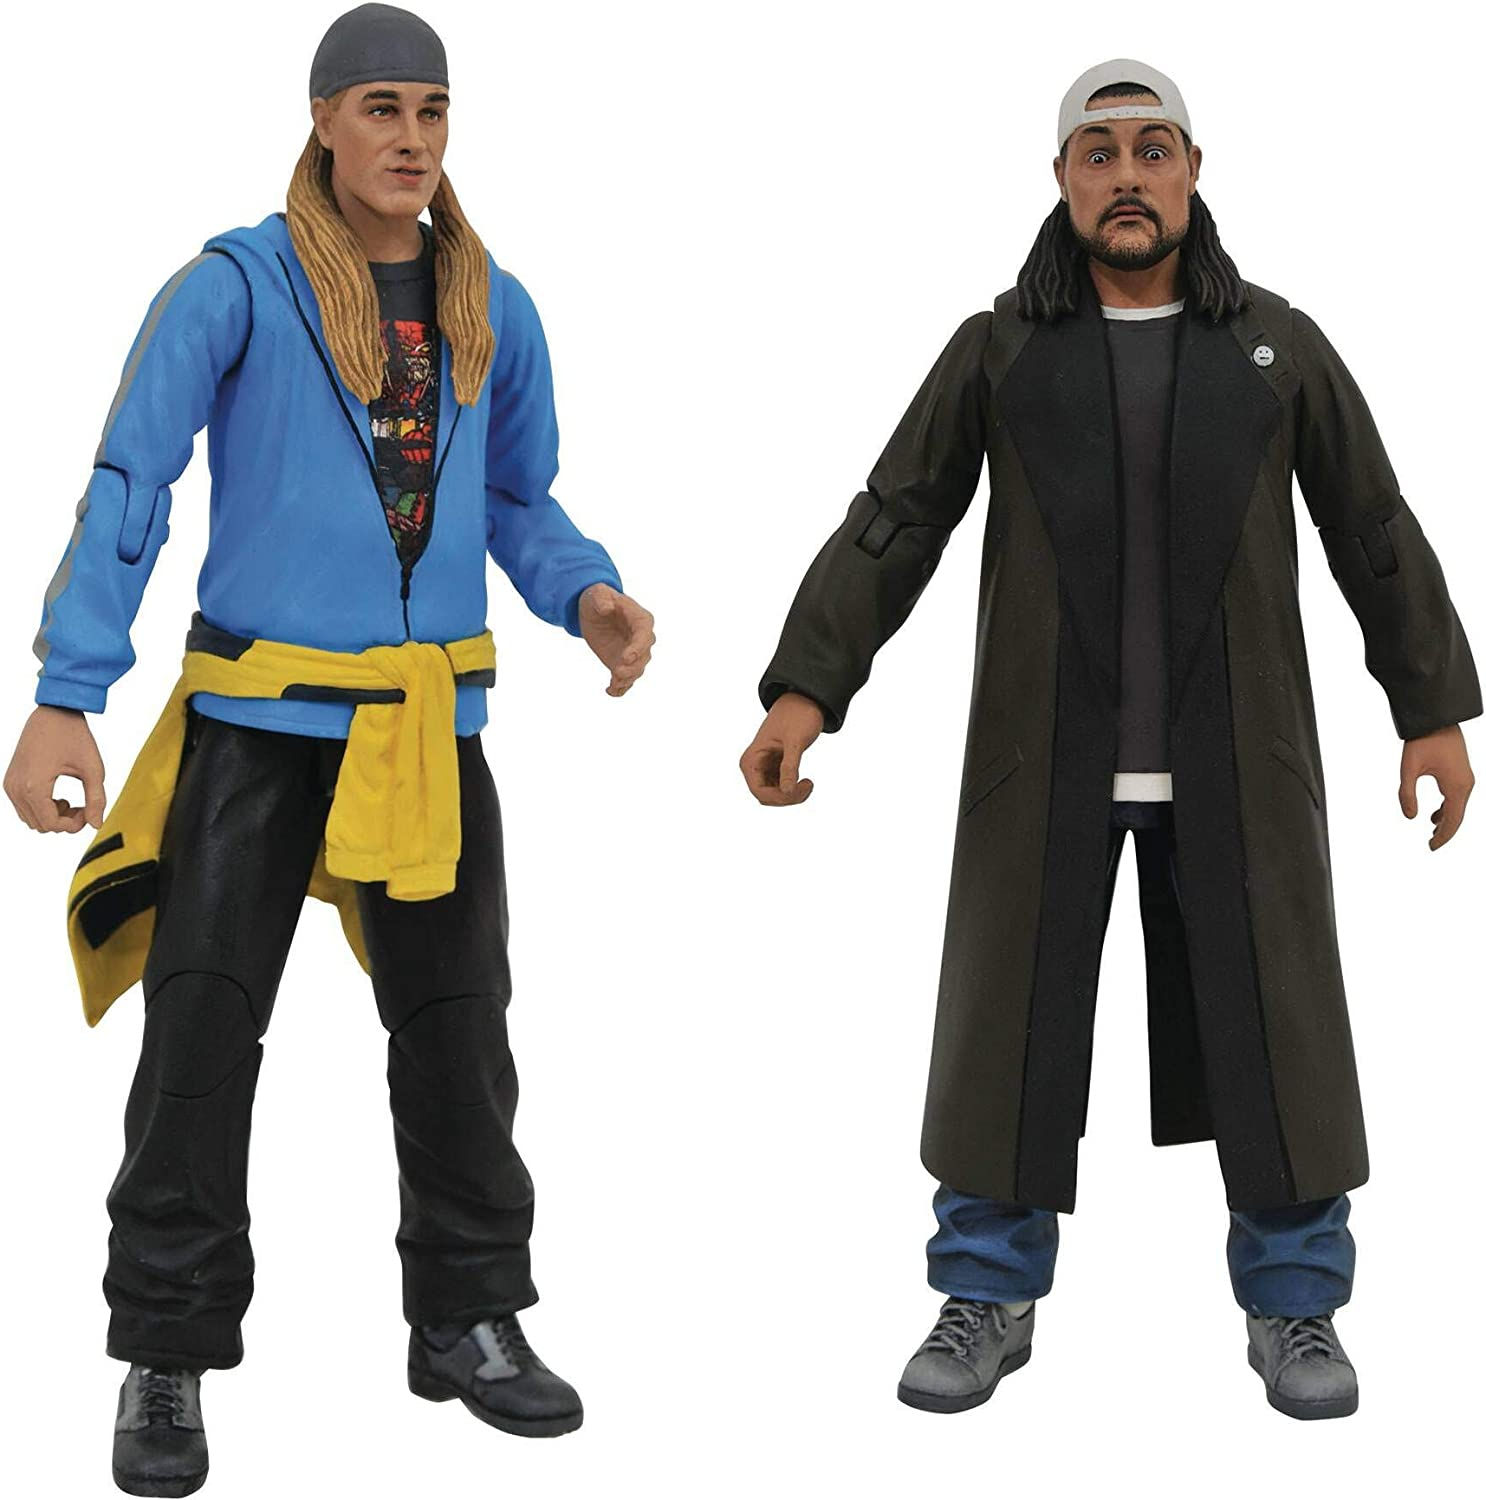 View Askew Jay and Silent Bob Strike Back Select Chronic Action Figure